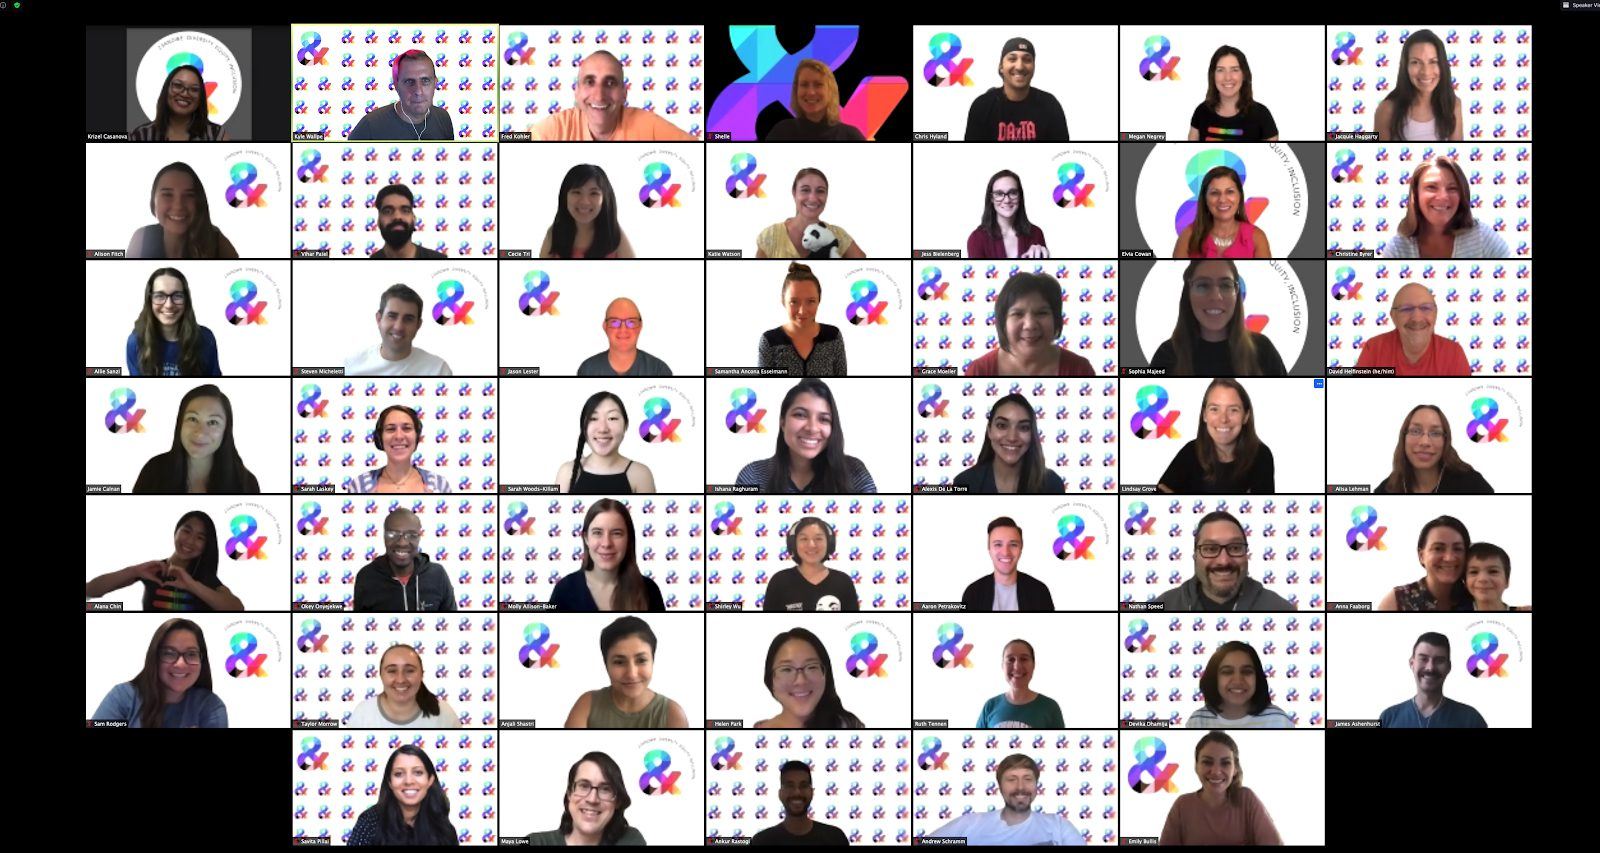 Images of dozens of 23andMe employees in a group zoom call about diversity and inclusion.